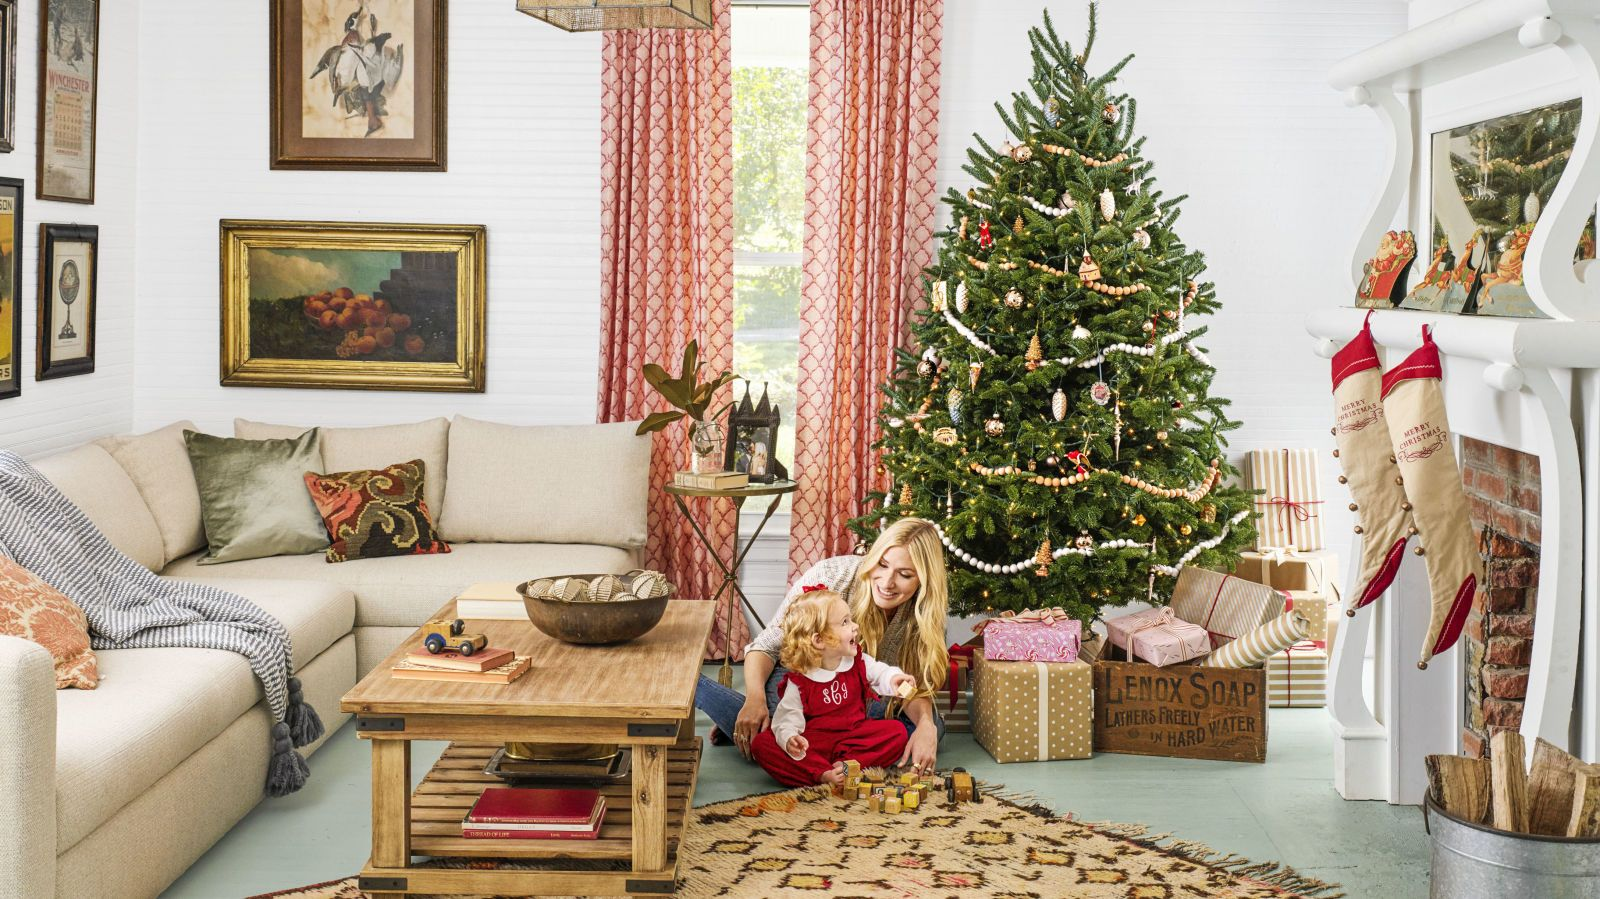 90 Best Christmas Decoration Ideas For The Merriest Home On The Block Simple Christmas Decor Christmas Decorations Living Room Farmhouse Christmas Decor Living room holiday decor